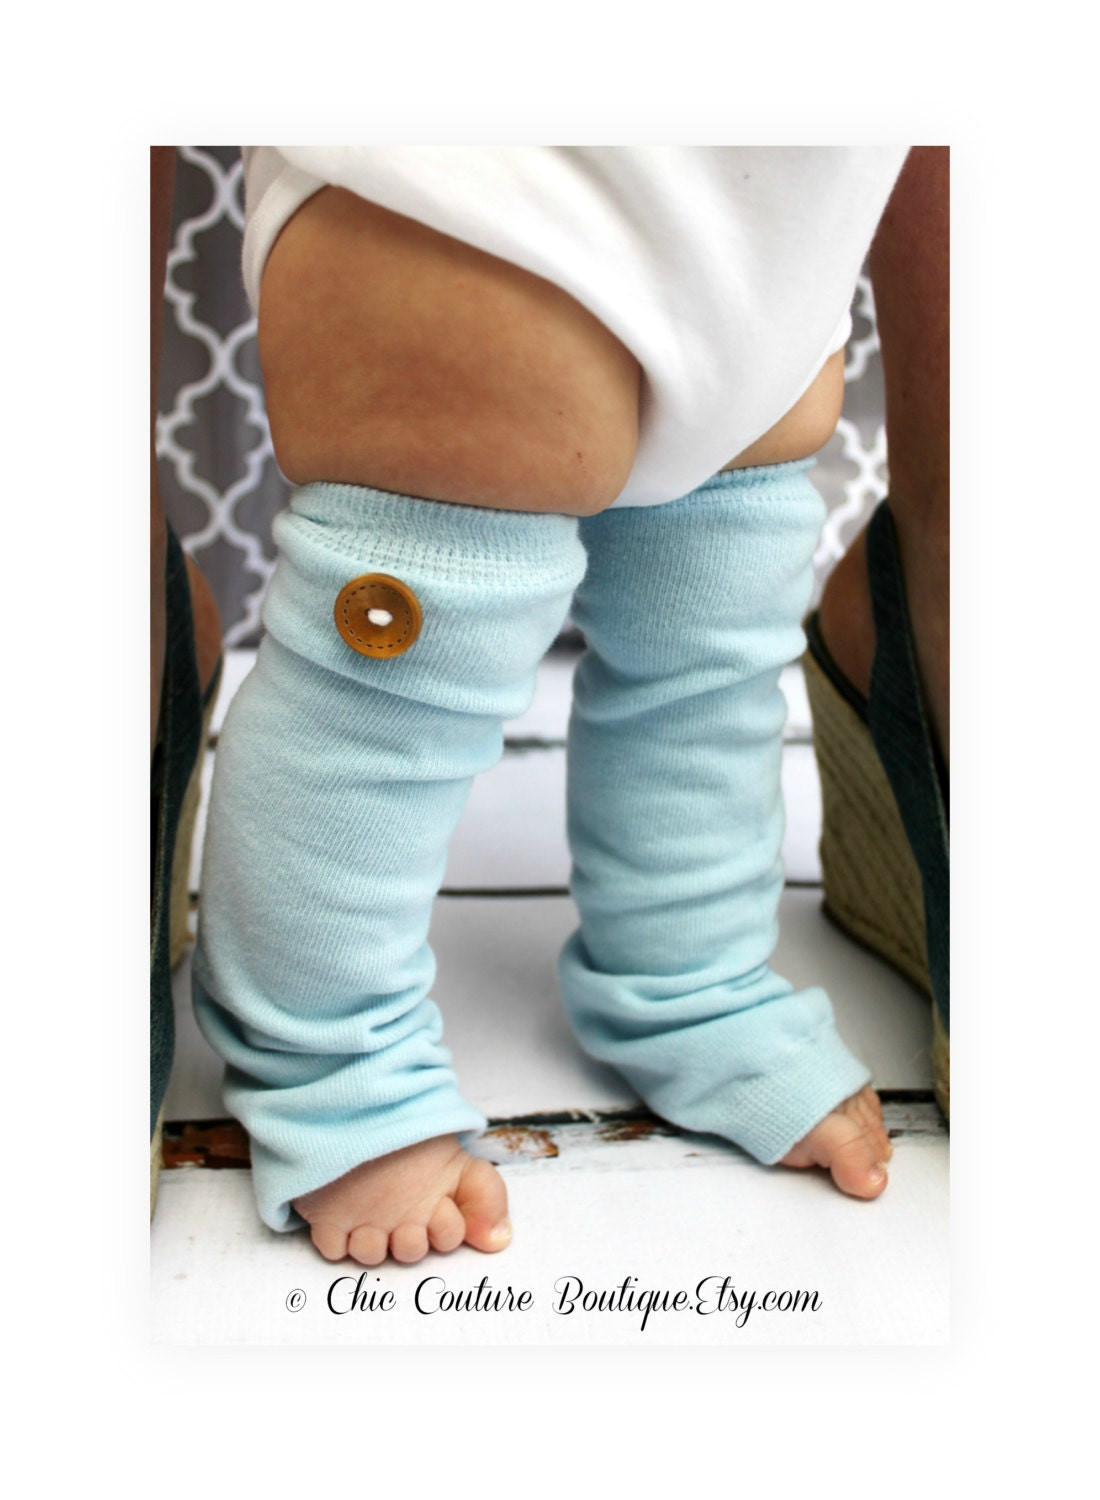 Featuring lots of romperleg warmers cute for sale. Our team offers an exhaustive selection of items at an array of prices. Shop romperleg warmers cute now.